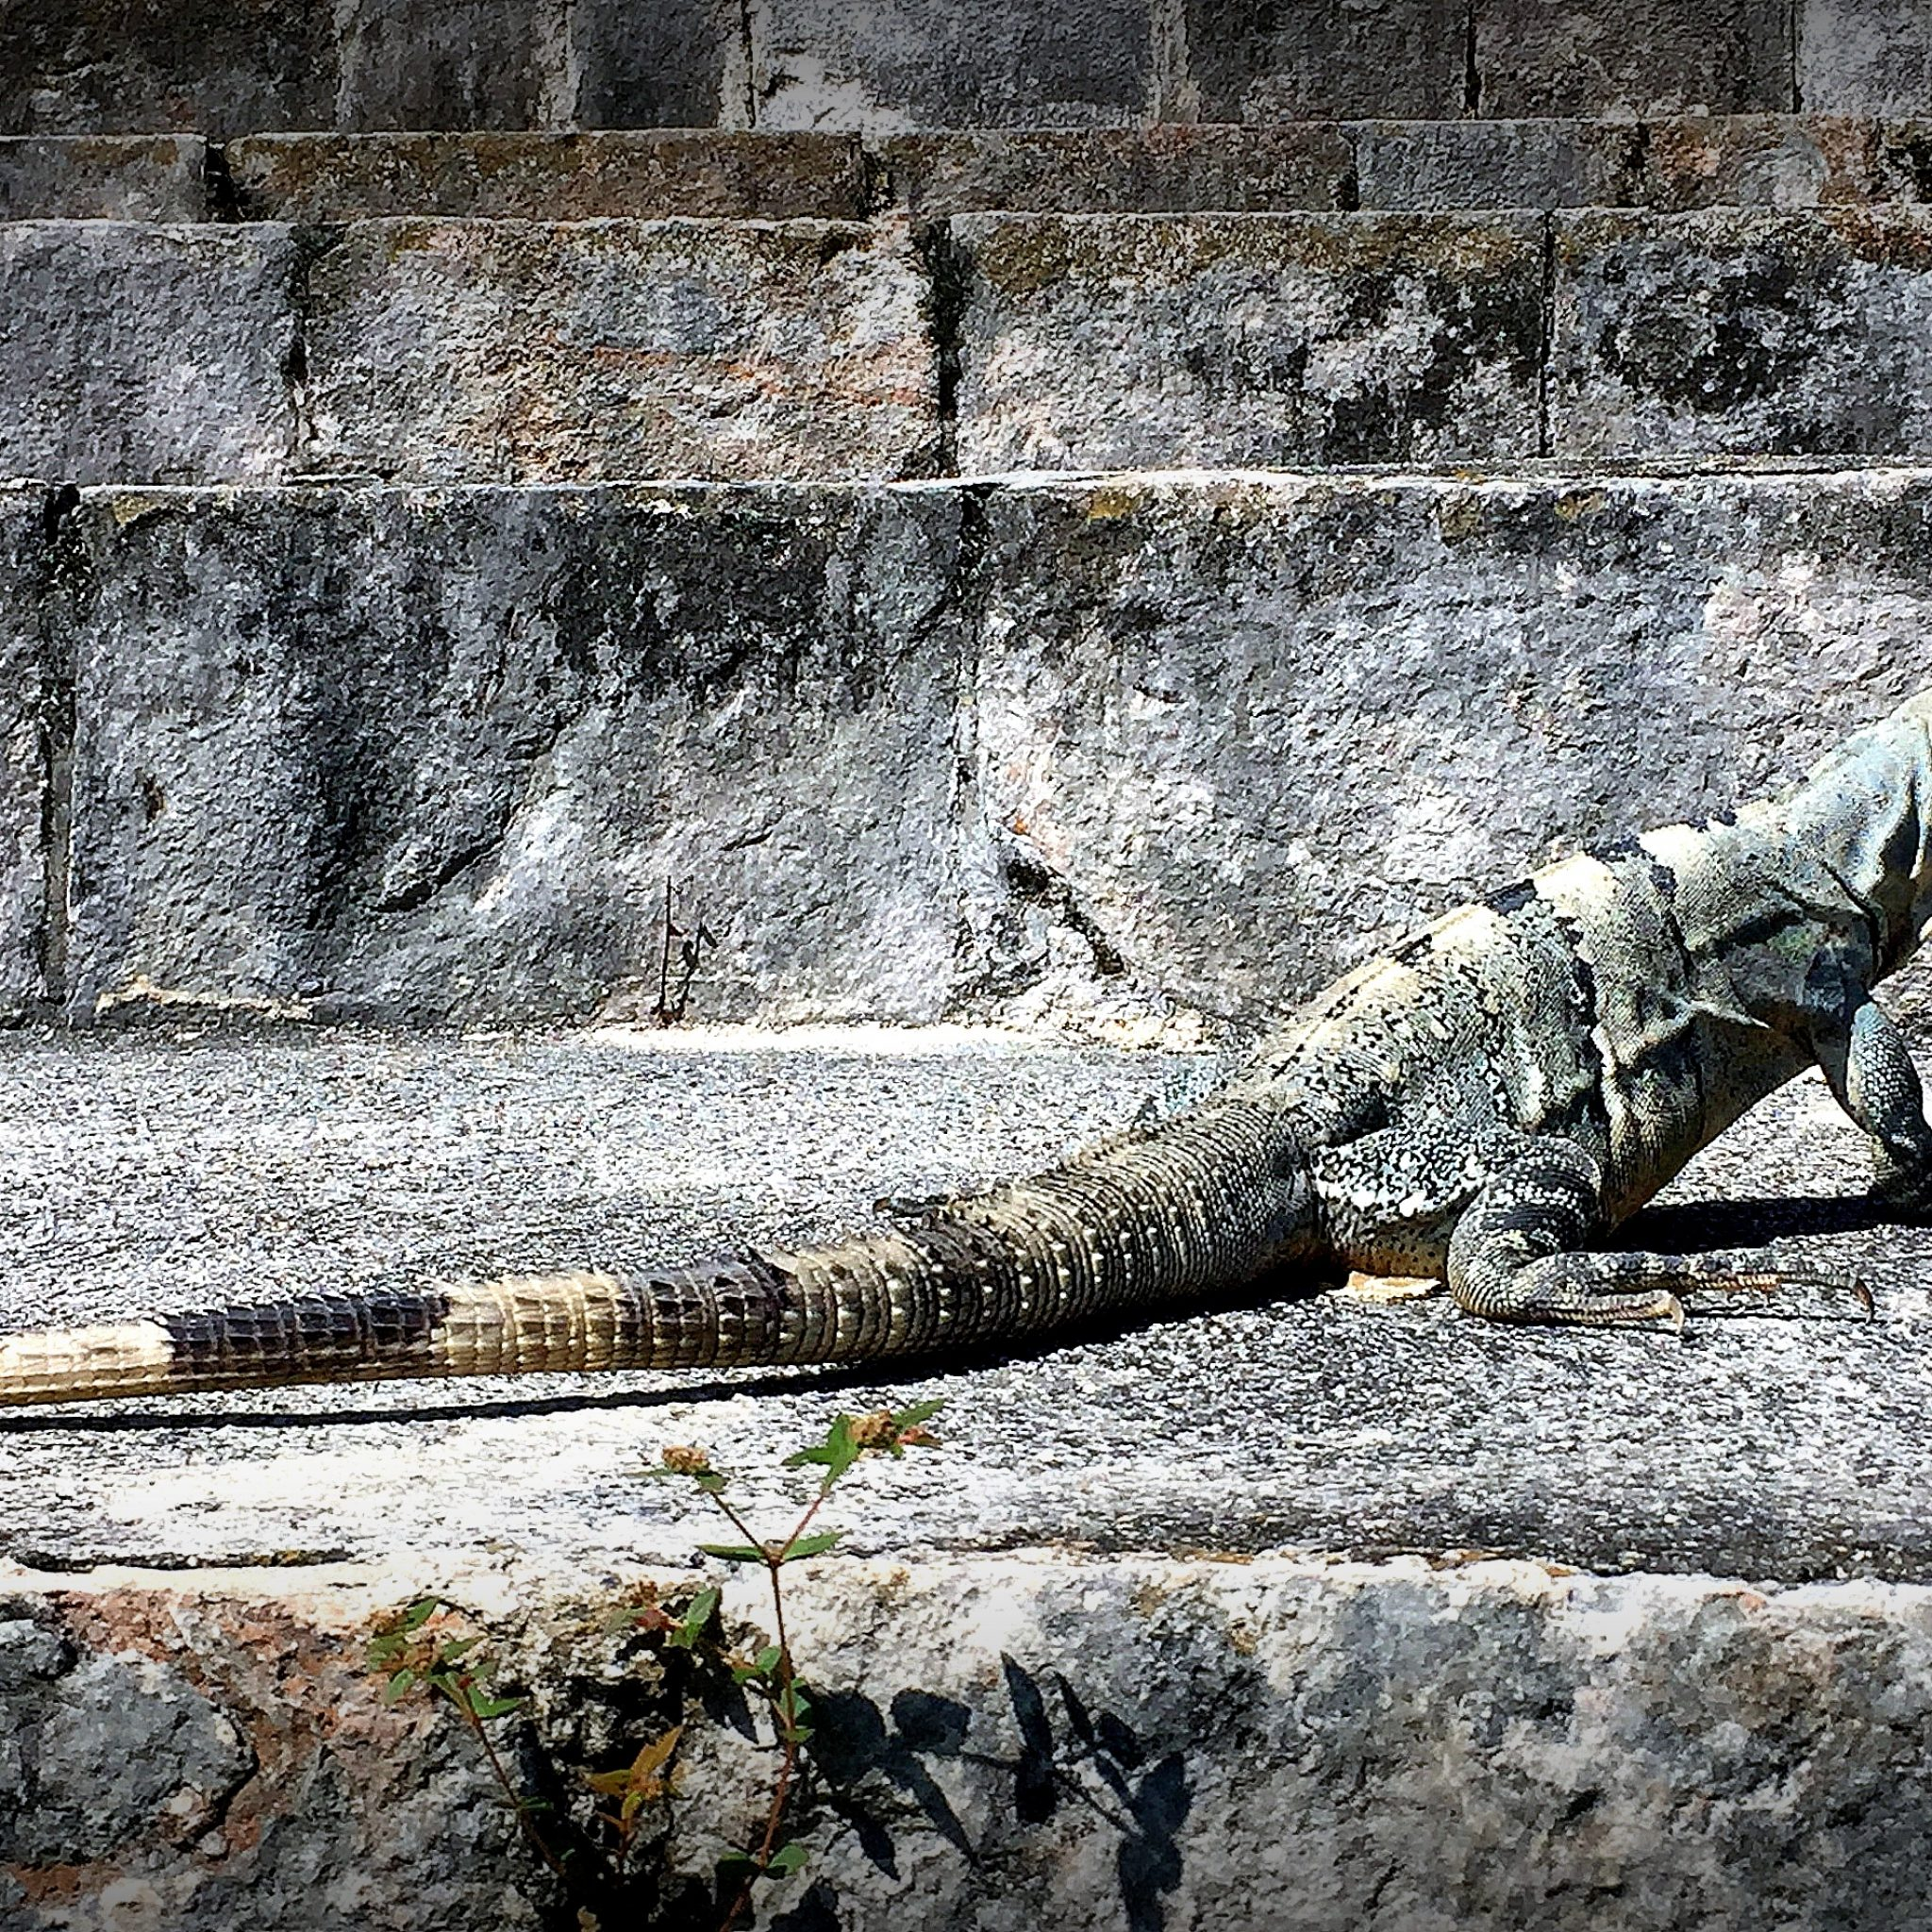 You will likely have the place almost all to yourself, save for countless iguanas.